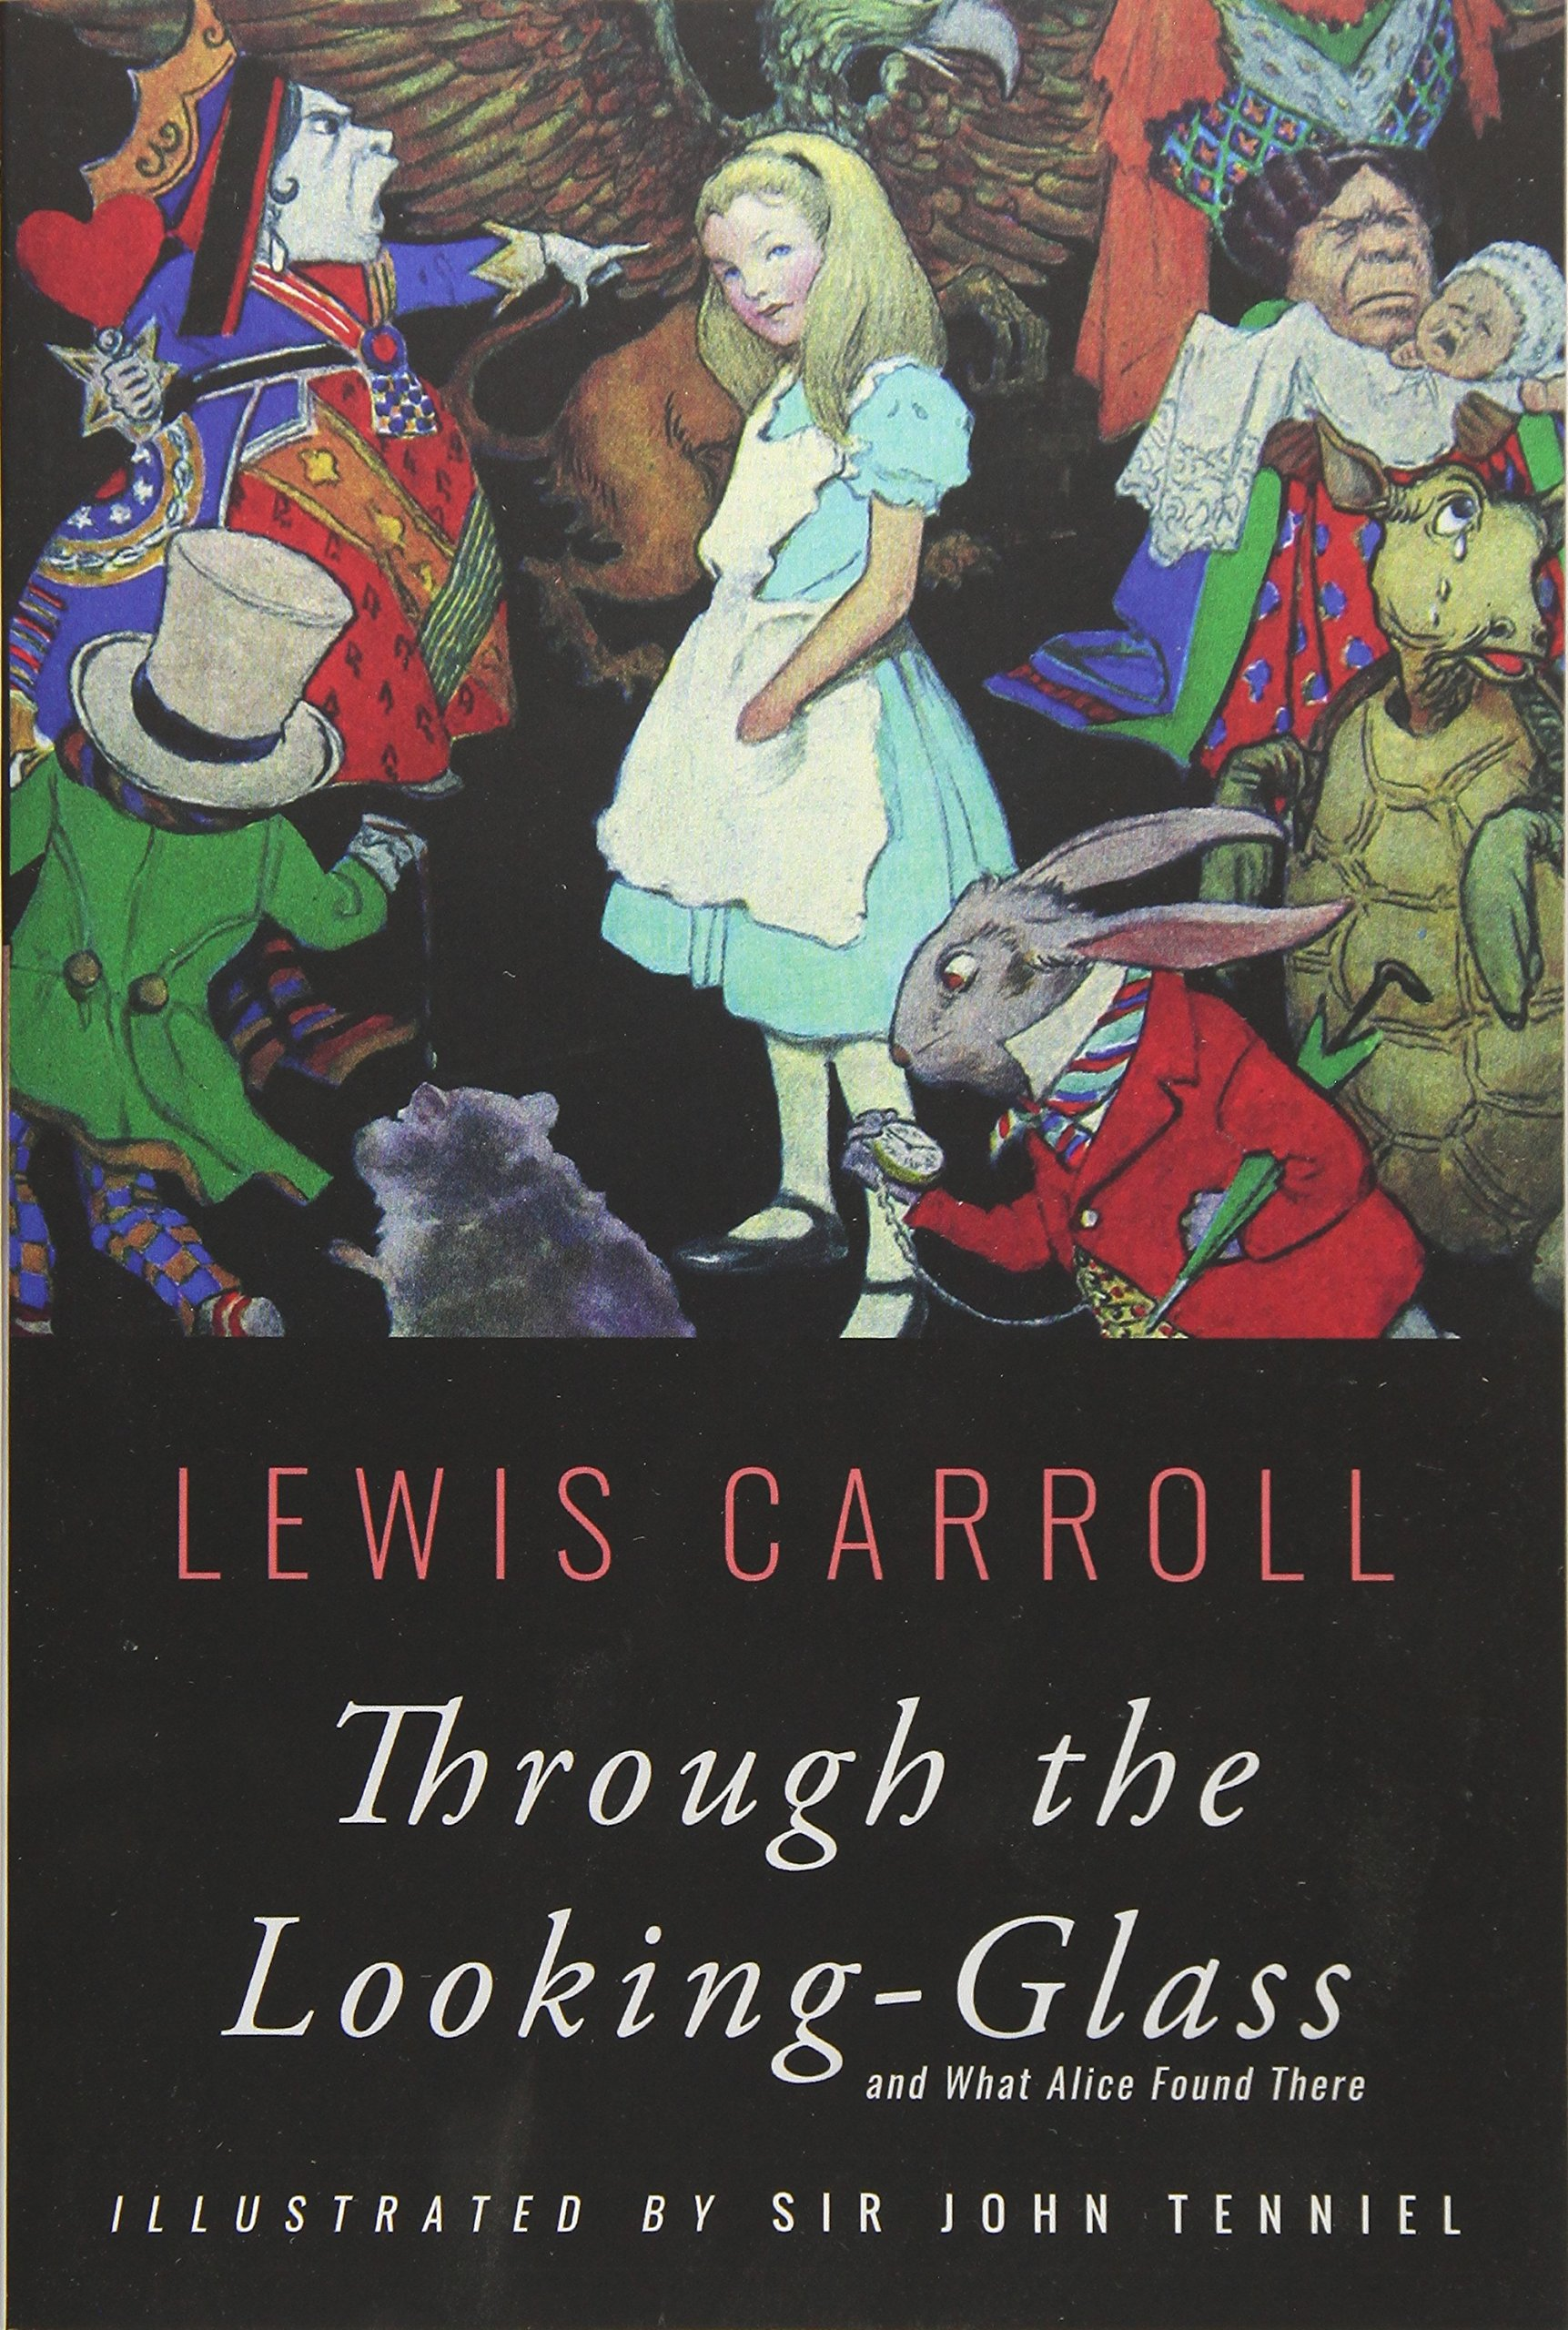 Through the Looking-Glass: Illustrated: Amazon.co.uk: Carroll, Lewis,  Tenniel, Sir John: 9781533557124: Books